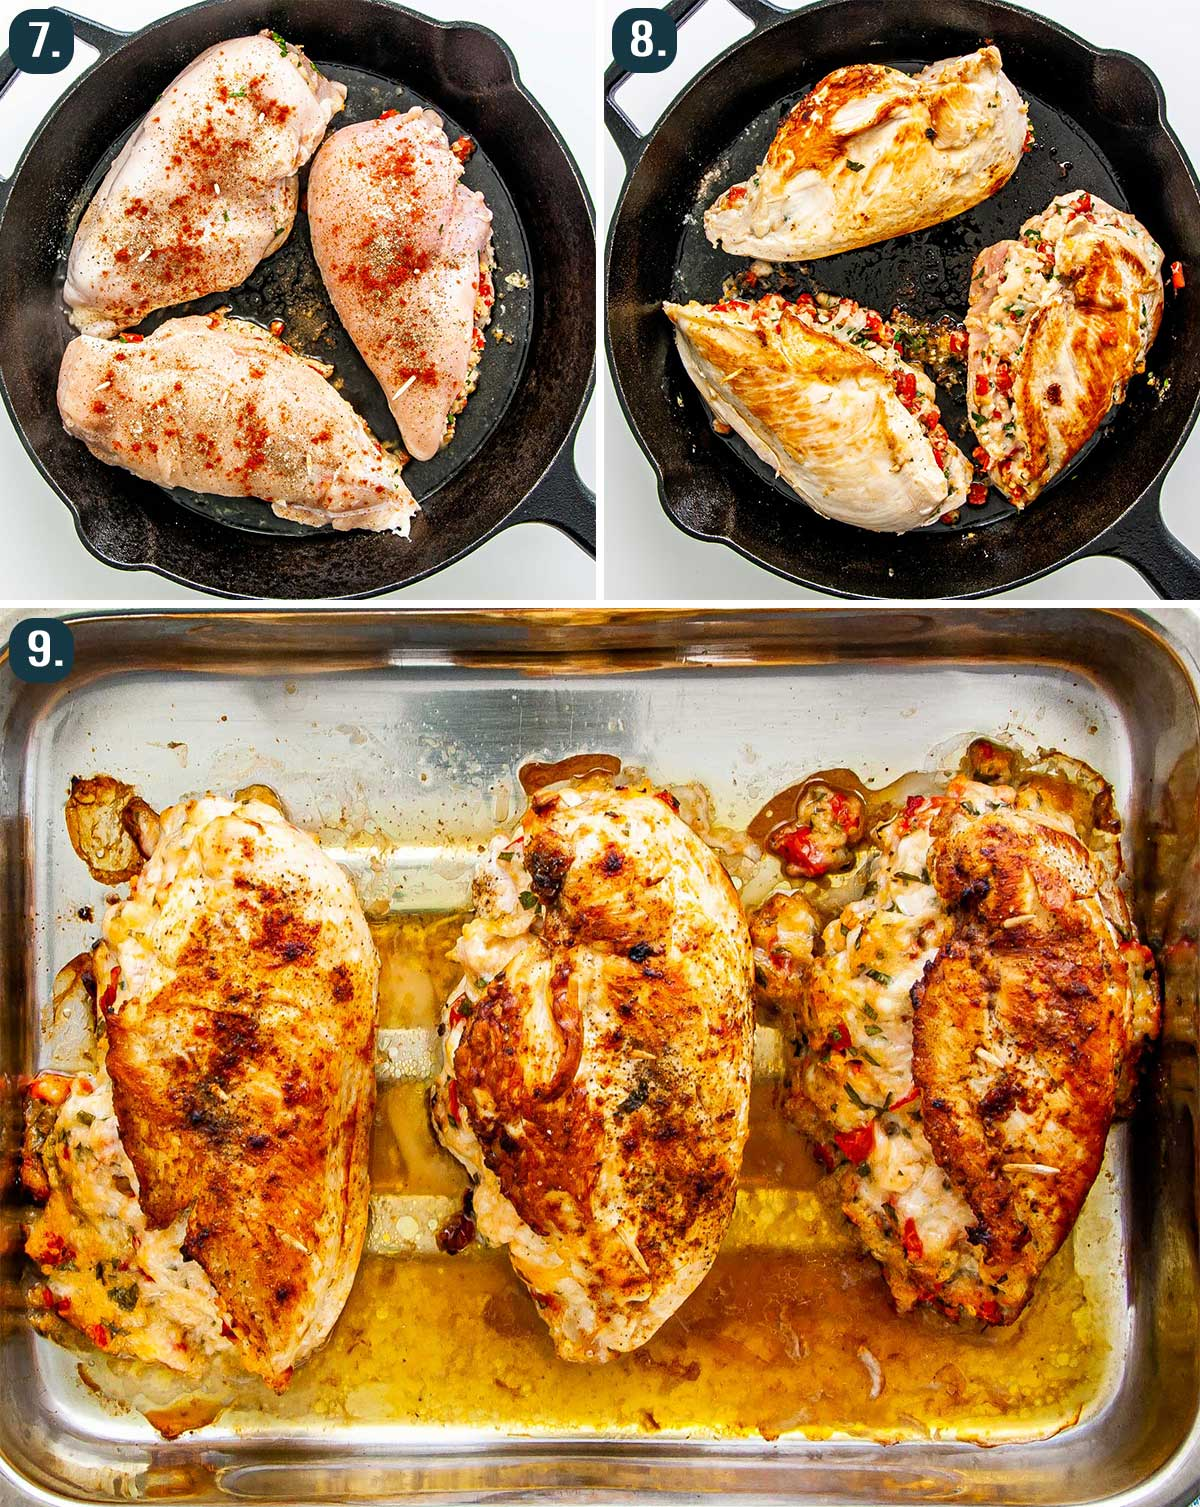 detailed process shots showing how to cook stuffed chicken breasts